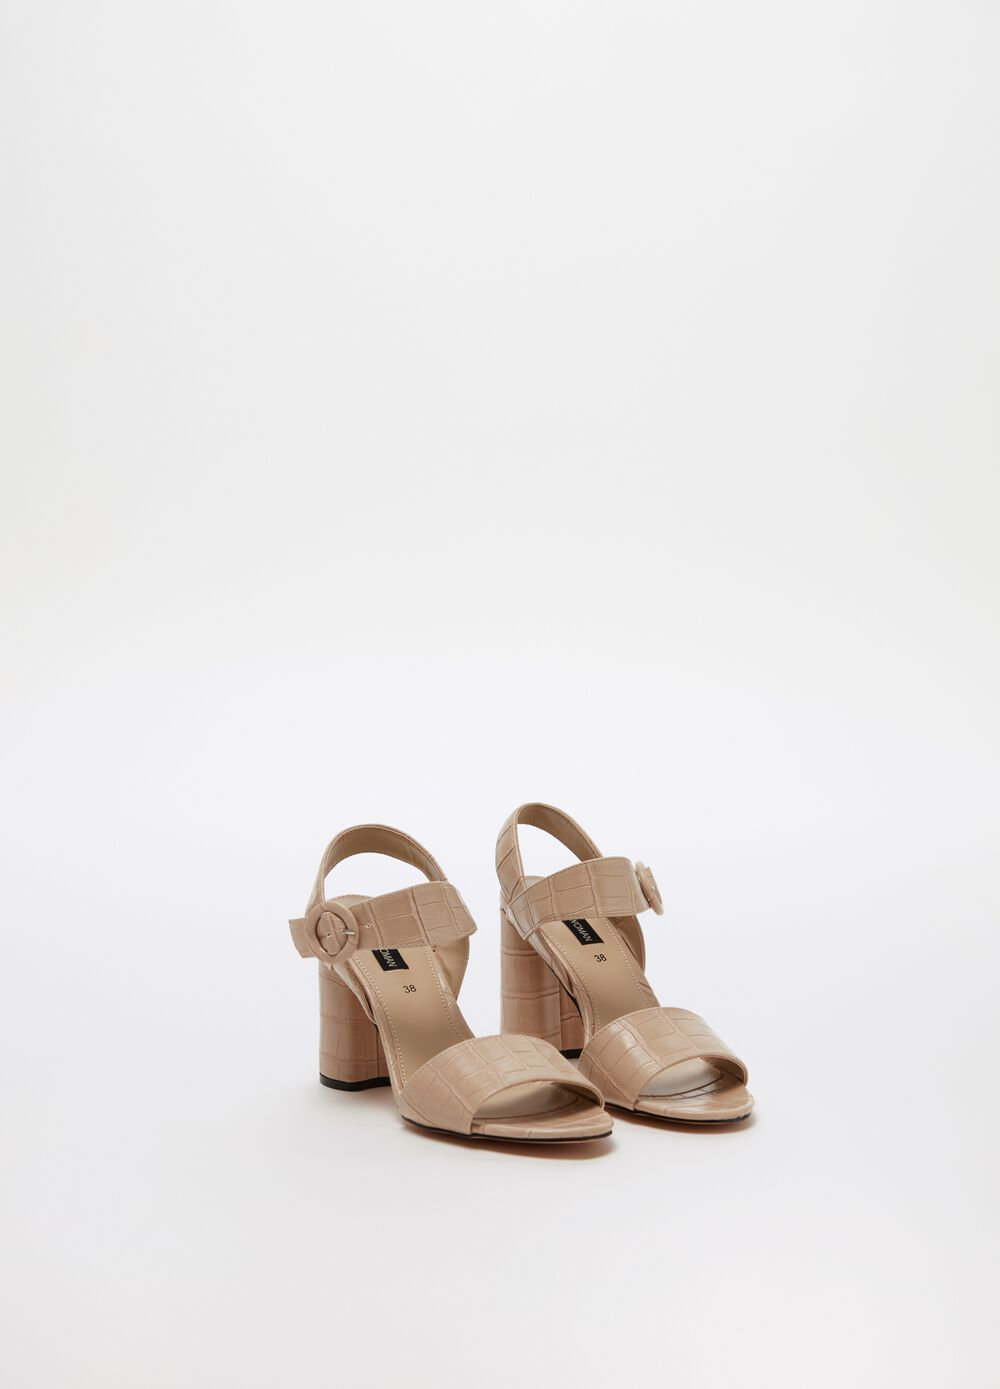 Crocodile-effect sandals with high heel